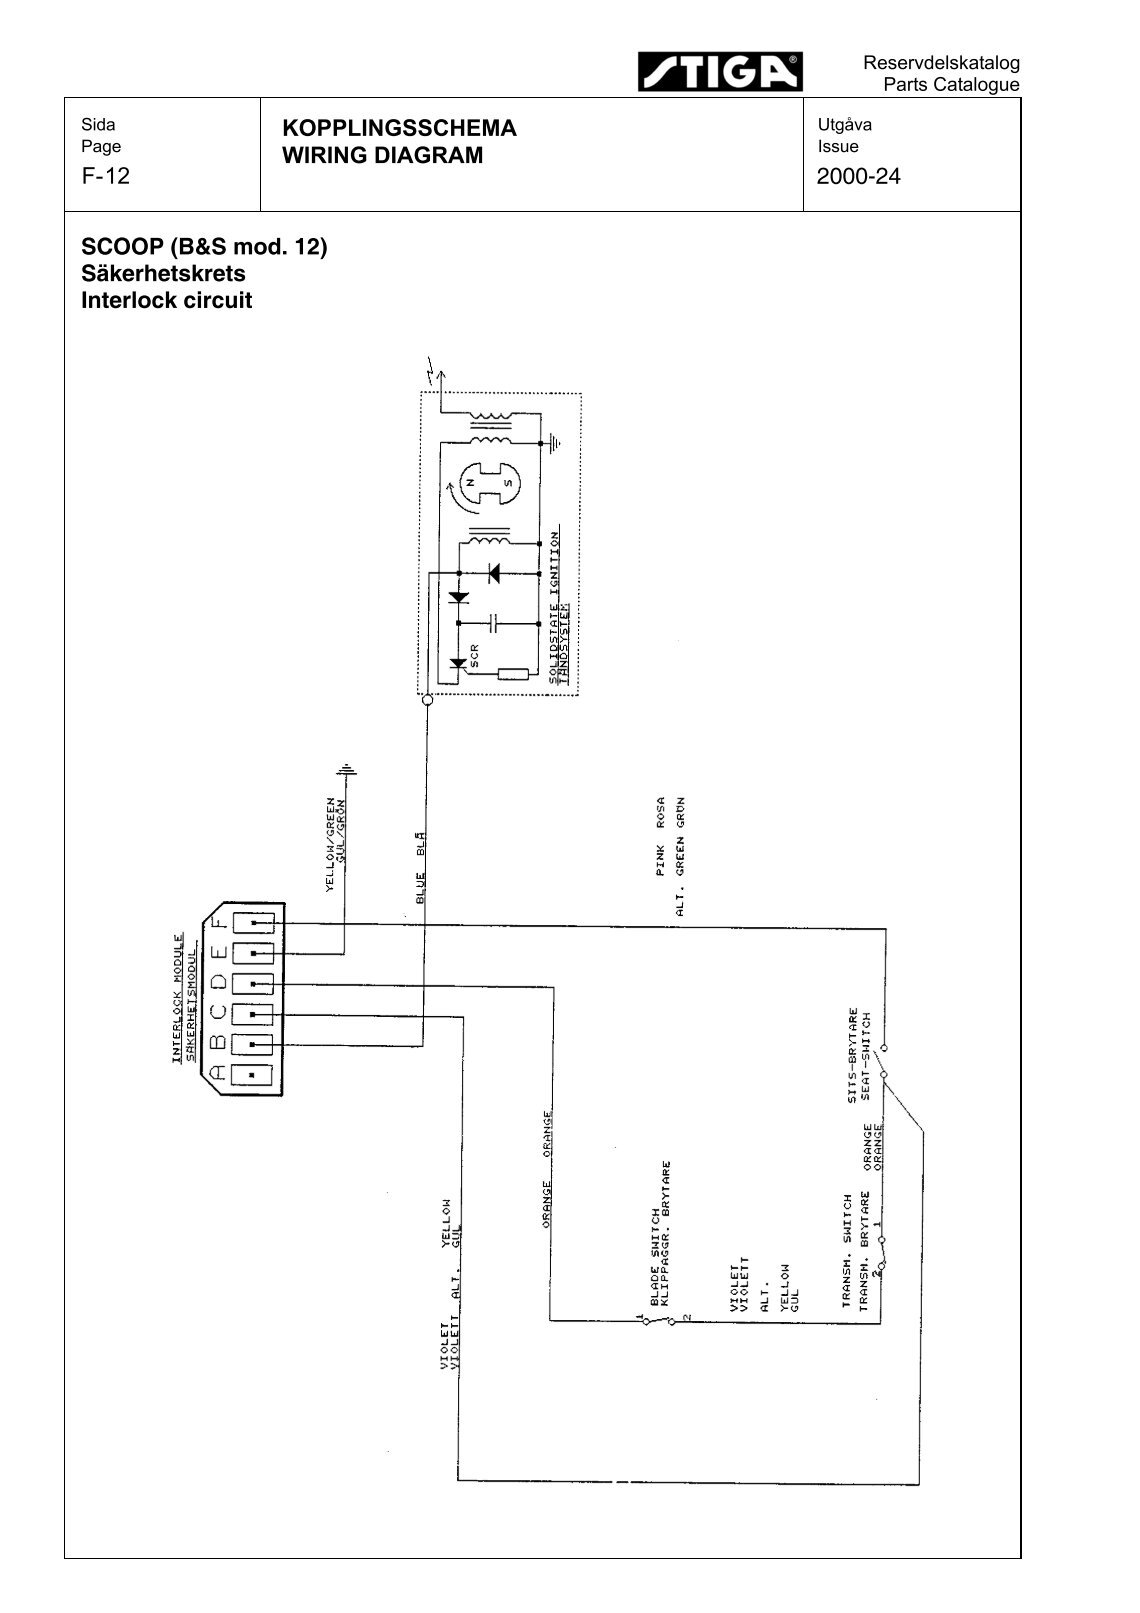 Delco 15071234 Wiring Diagram Will Be A Thing Gm Diagrams For Radios Model Radio 1995